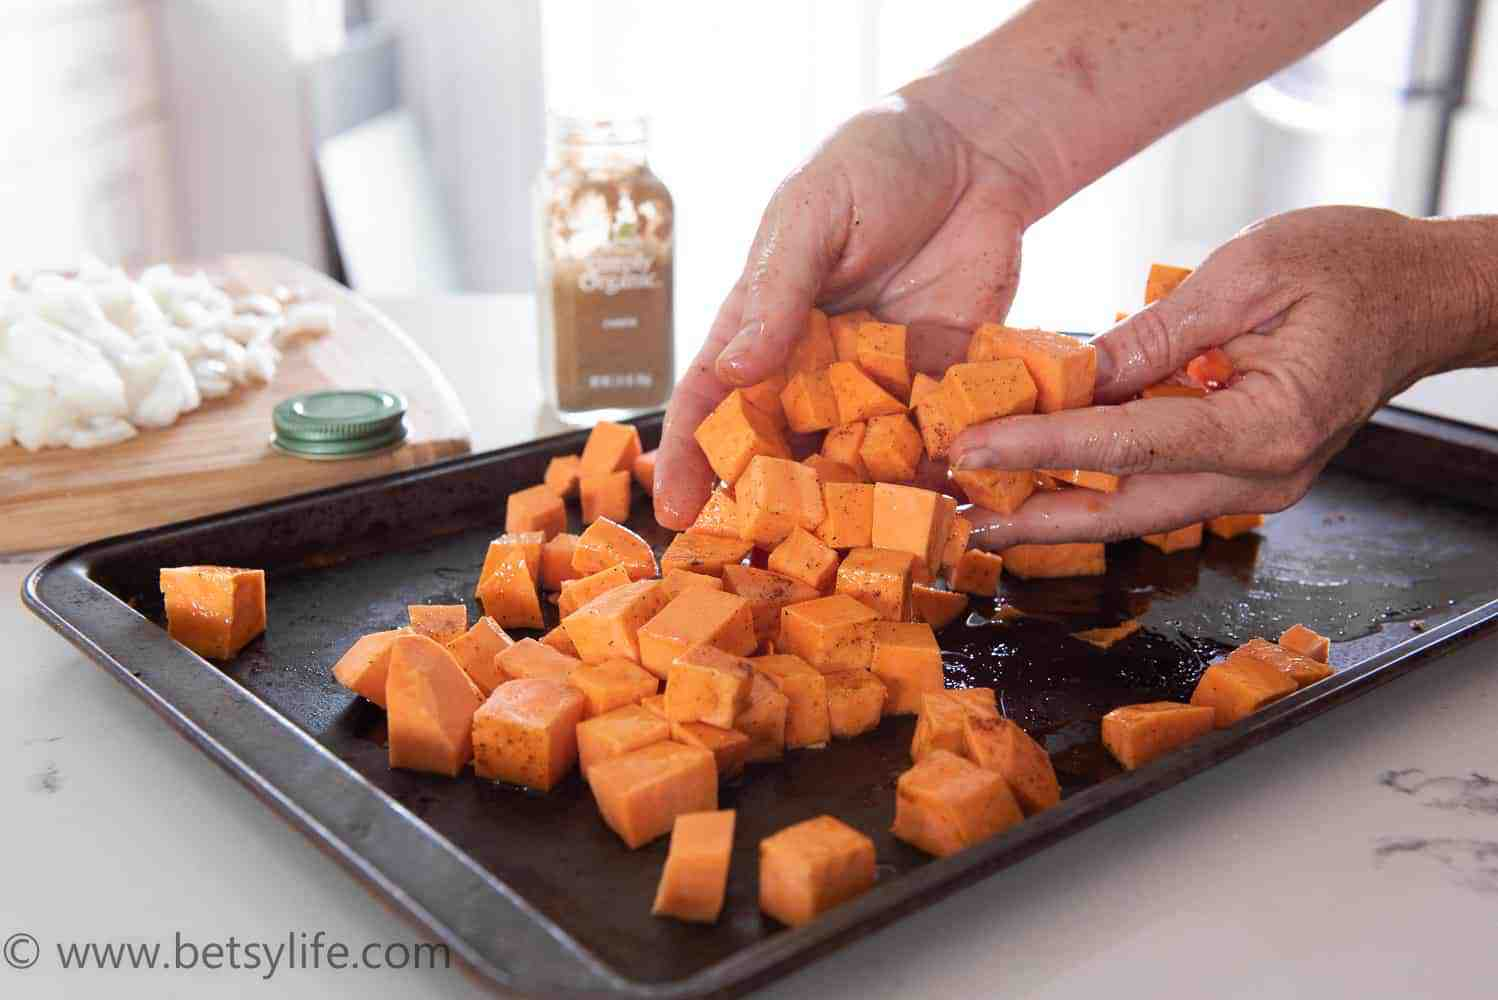 diced sweet potatoes being tossed on a baking sheet with oil and spices